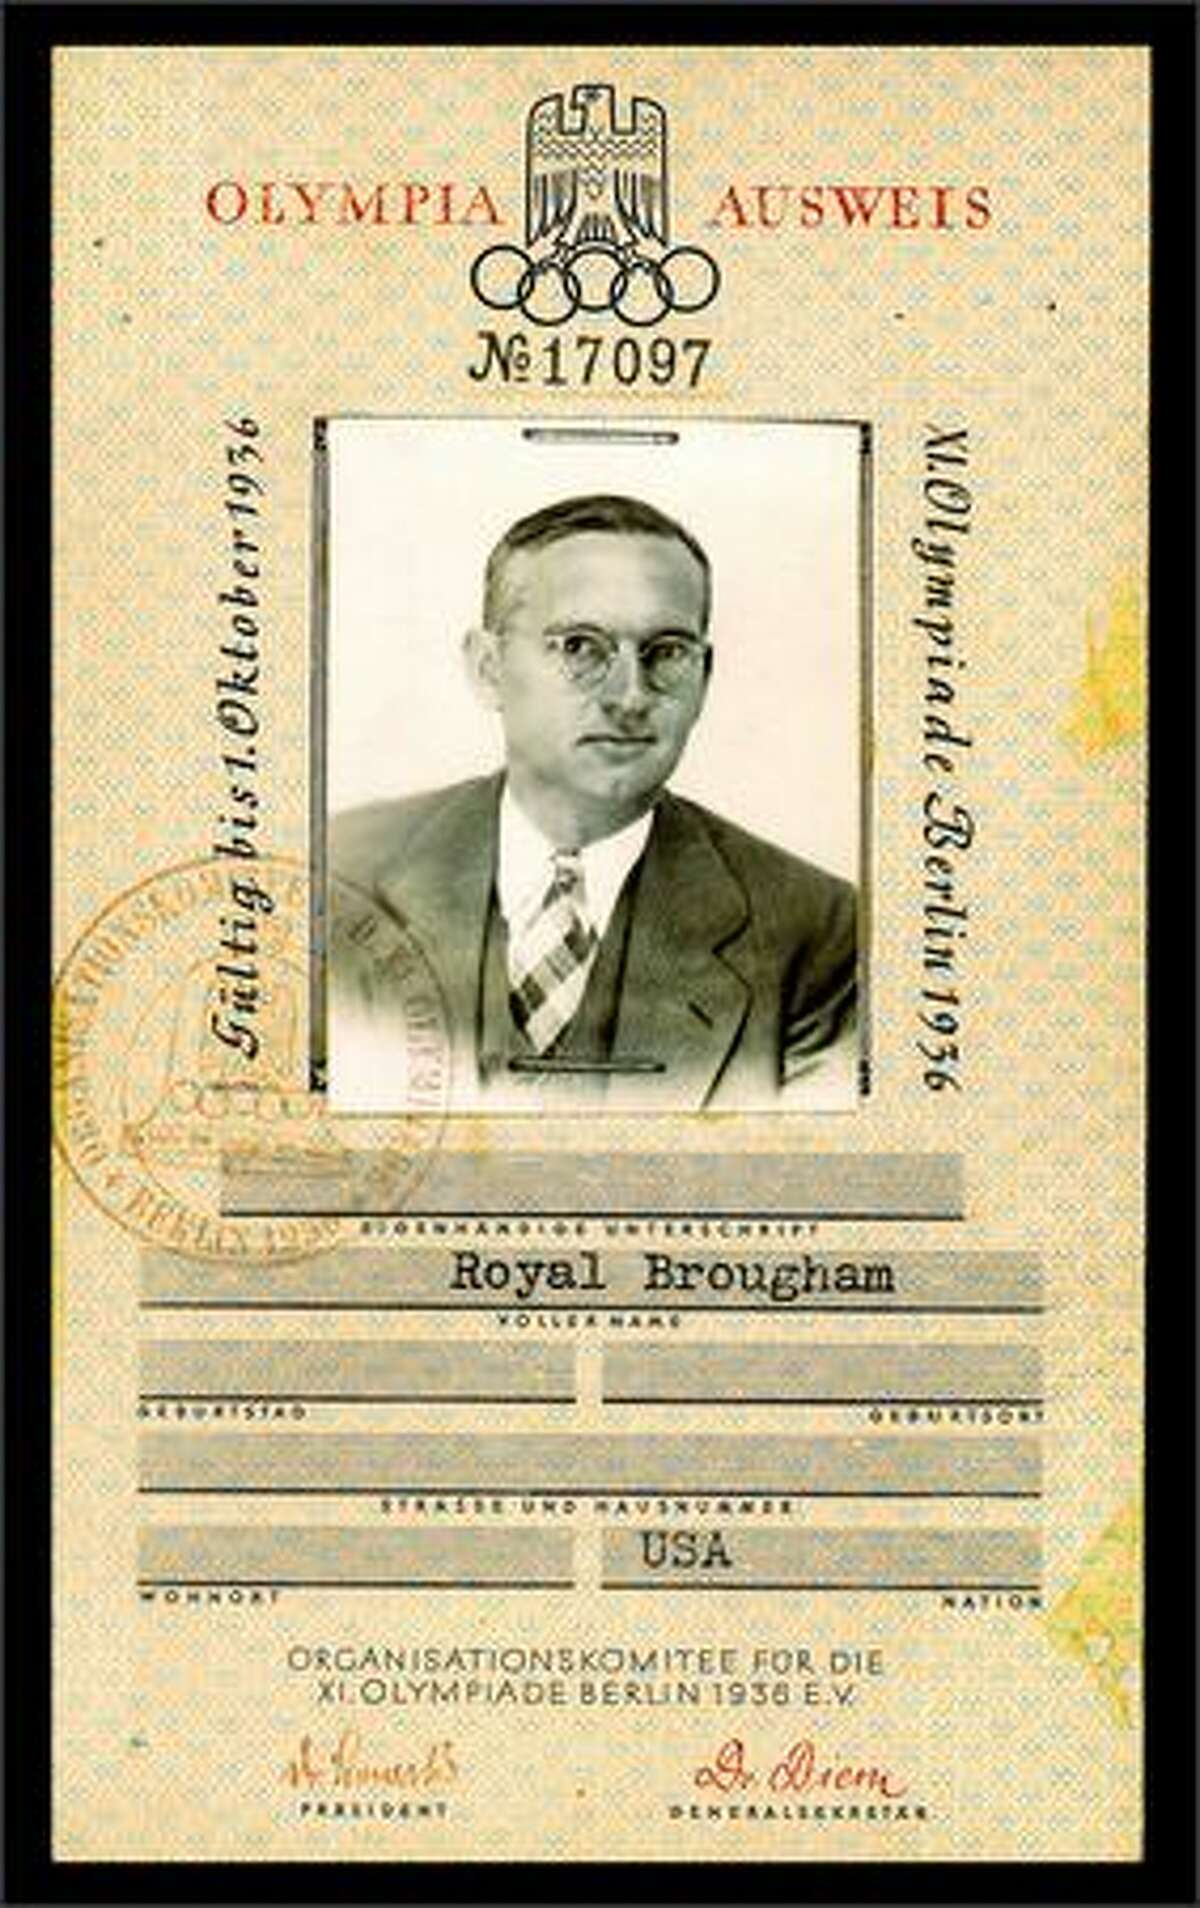 Royal Brougham's credentials for coverage of the historic 1936 Olympic games.